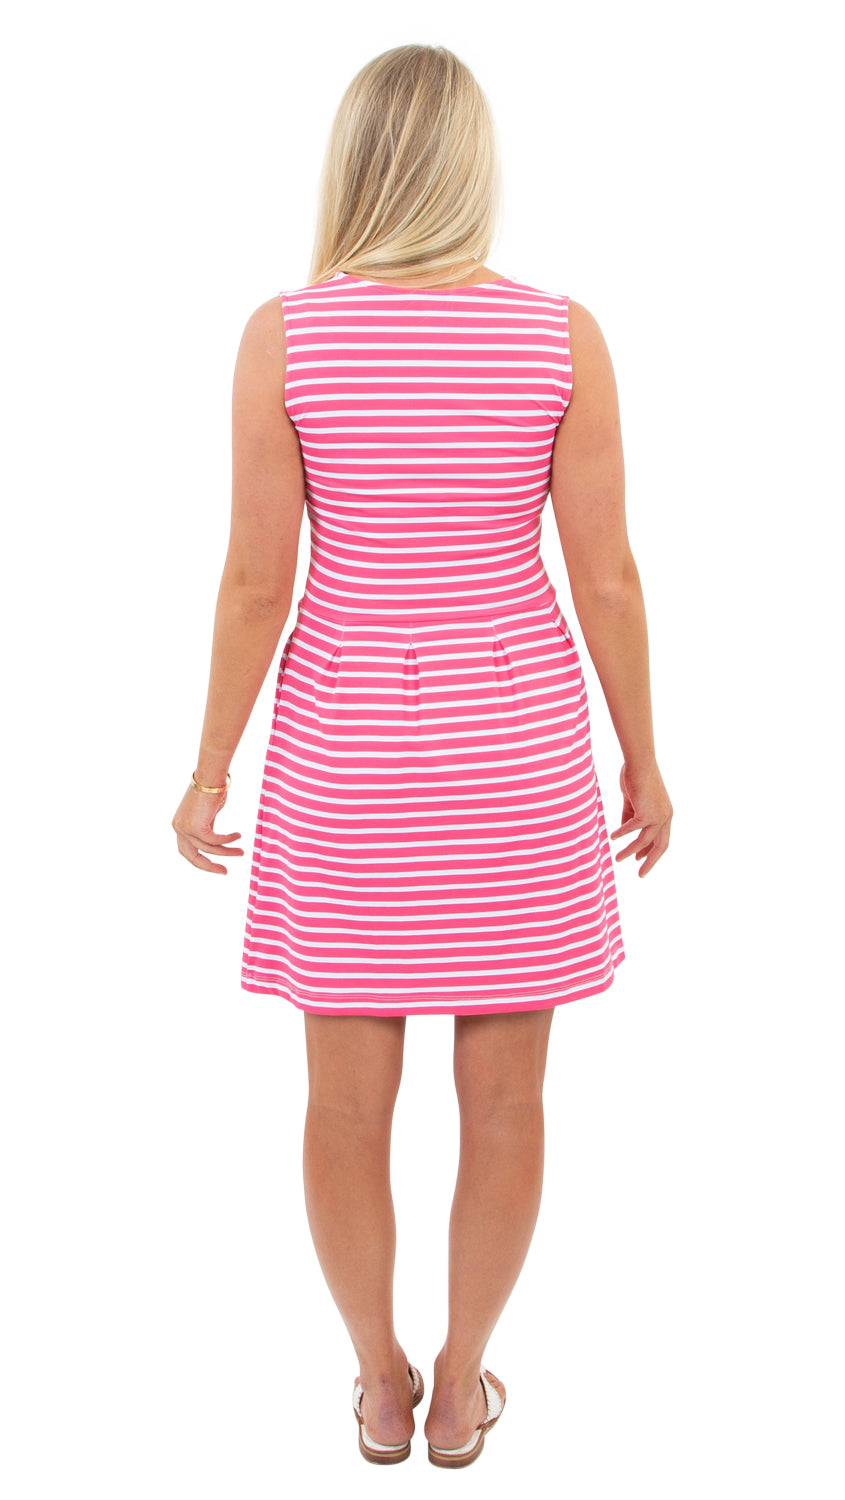 Boardwalk Dress - Hot Pink Summer Stripe